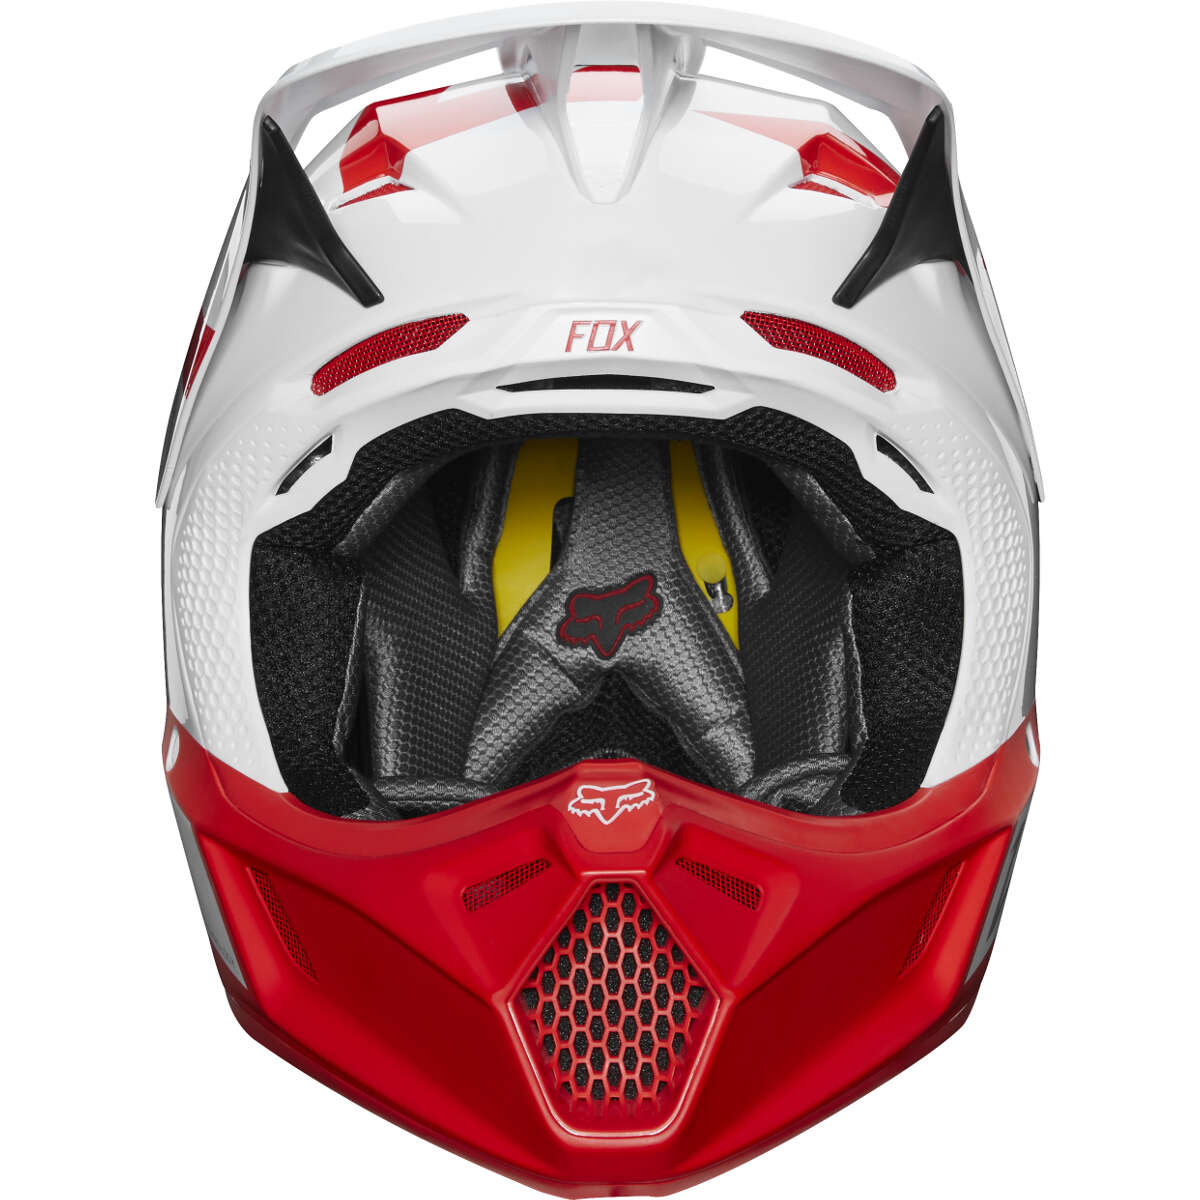 22145-077 fox limited edition v3 preest white red motocross bmx enduro helmet crosshelm casque helm